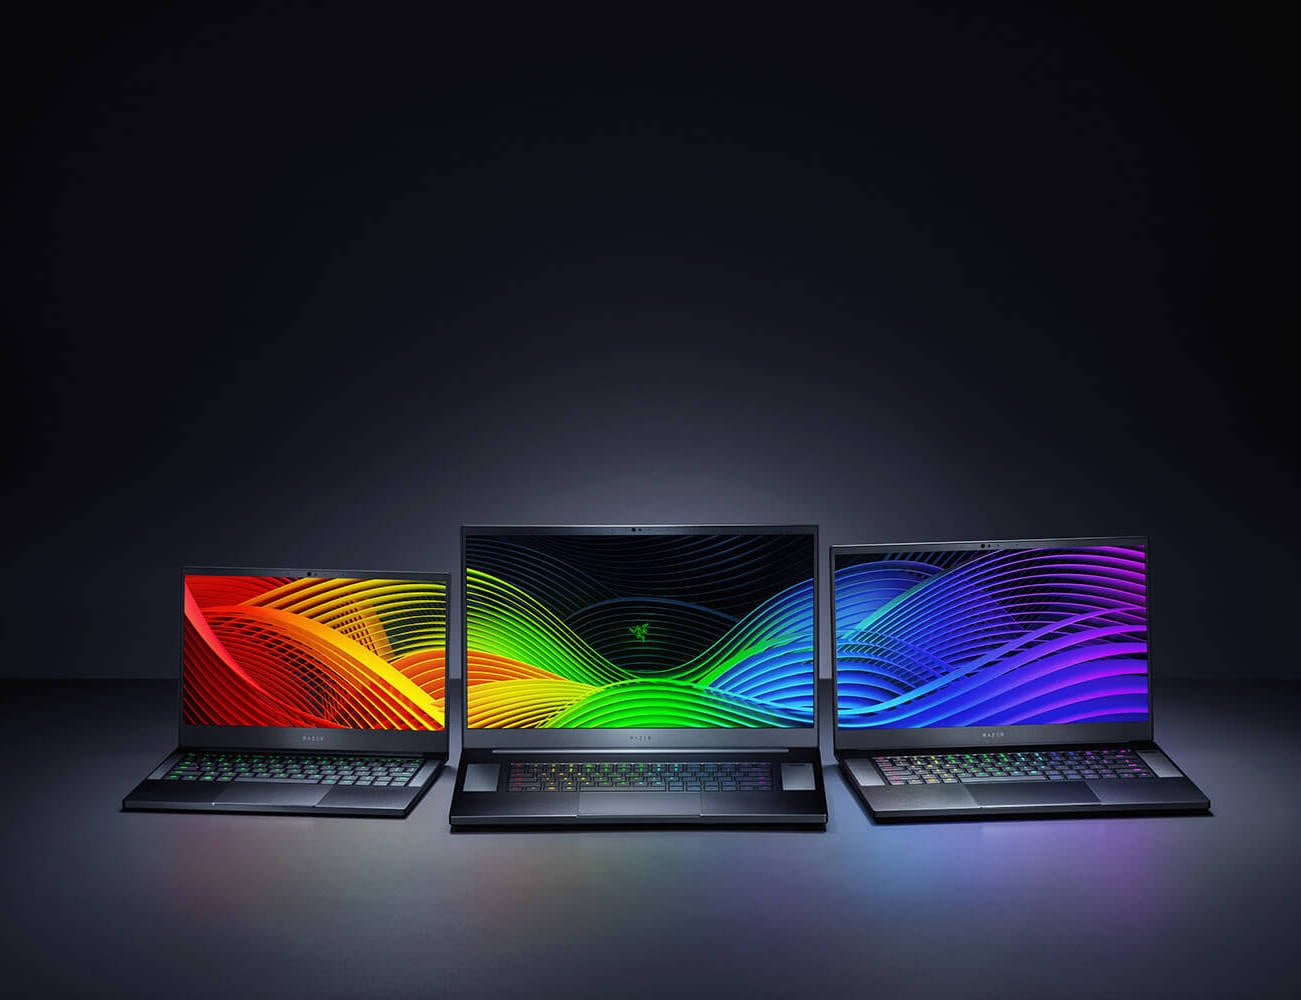 8 Gaming laptops worthy of taking you to the next level - Razer Blade Pro 17 01